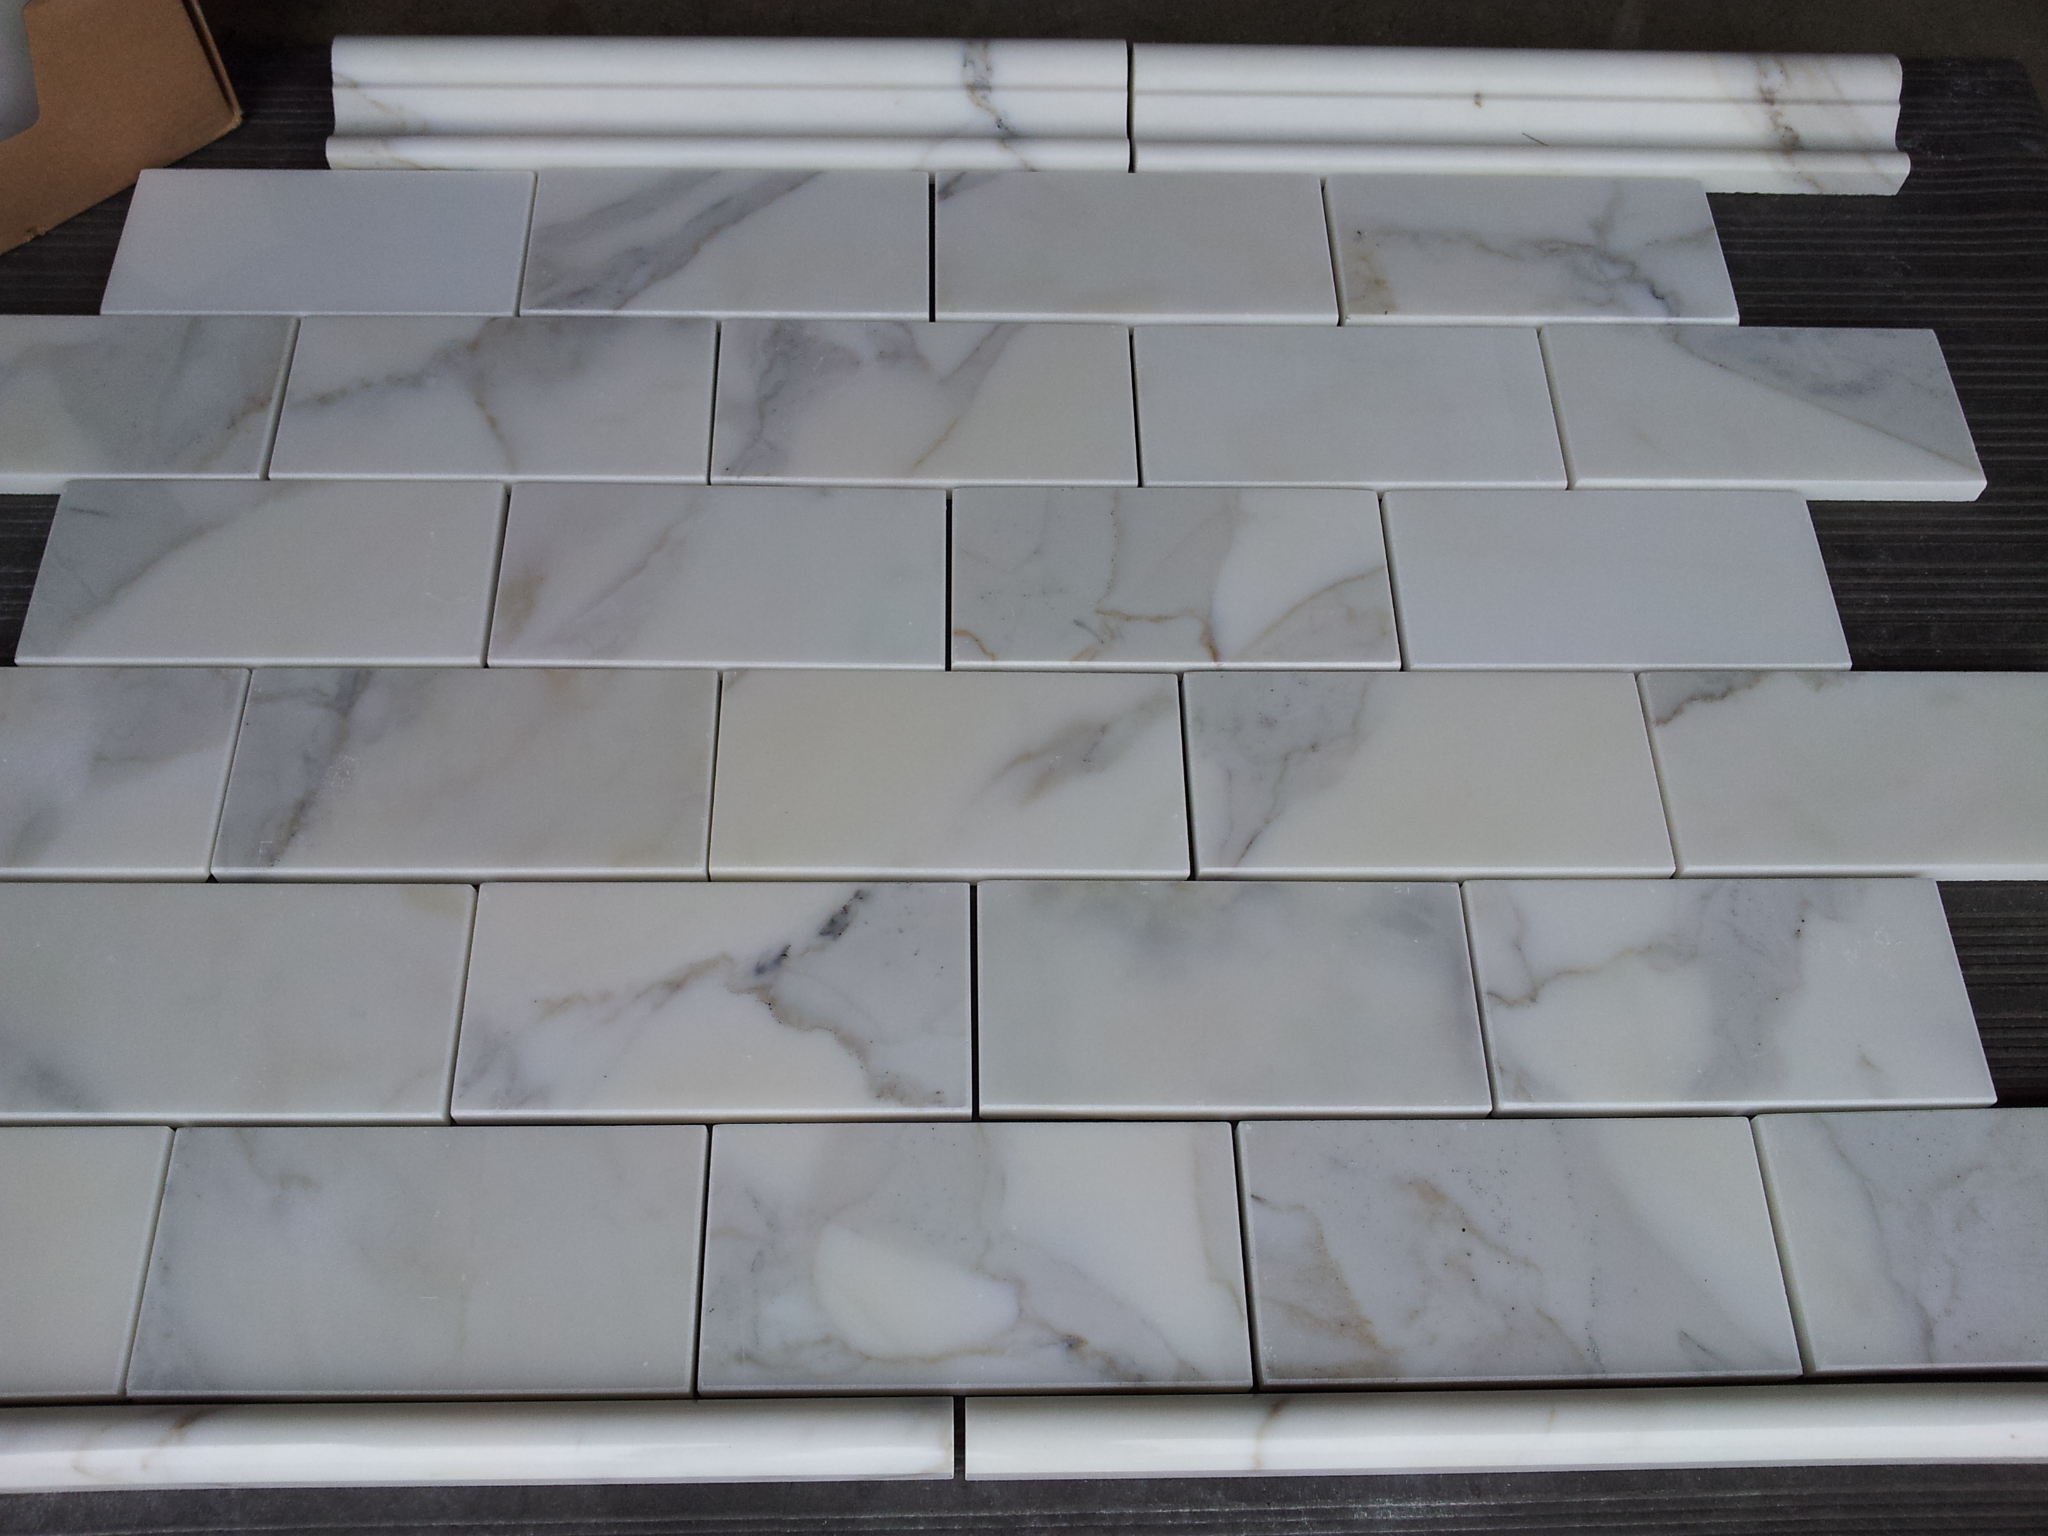 Calacatta 36 subway tile the builder depot blog if dailygadgetfo Choice Image